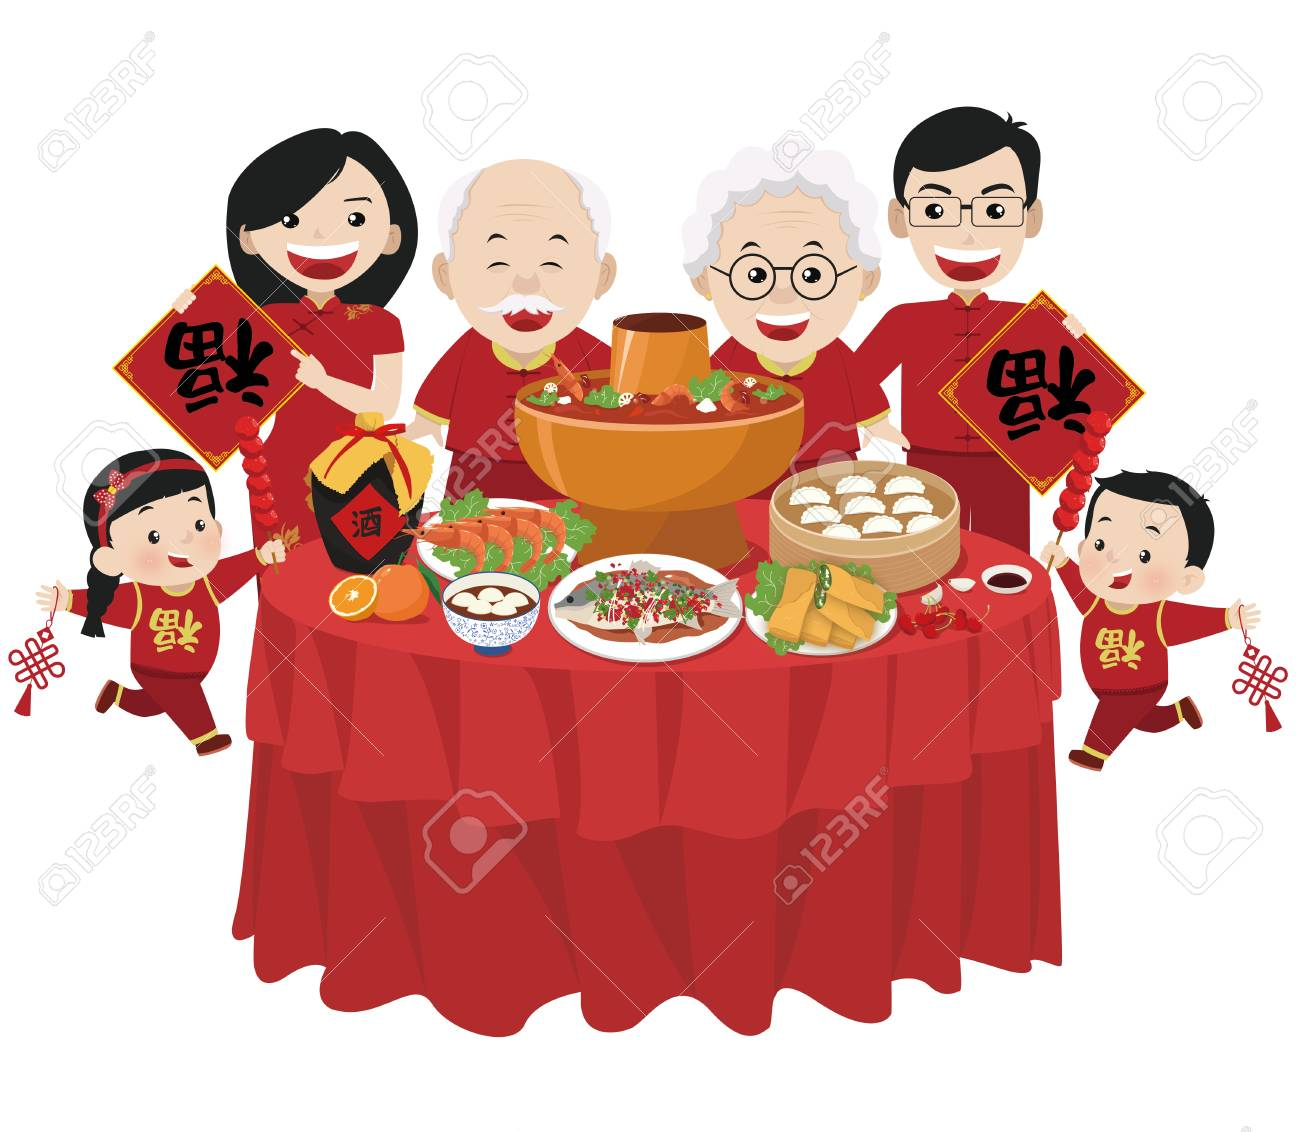 Family portrait, chinese new year illustration.